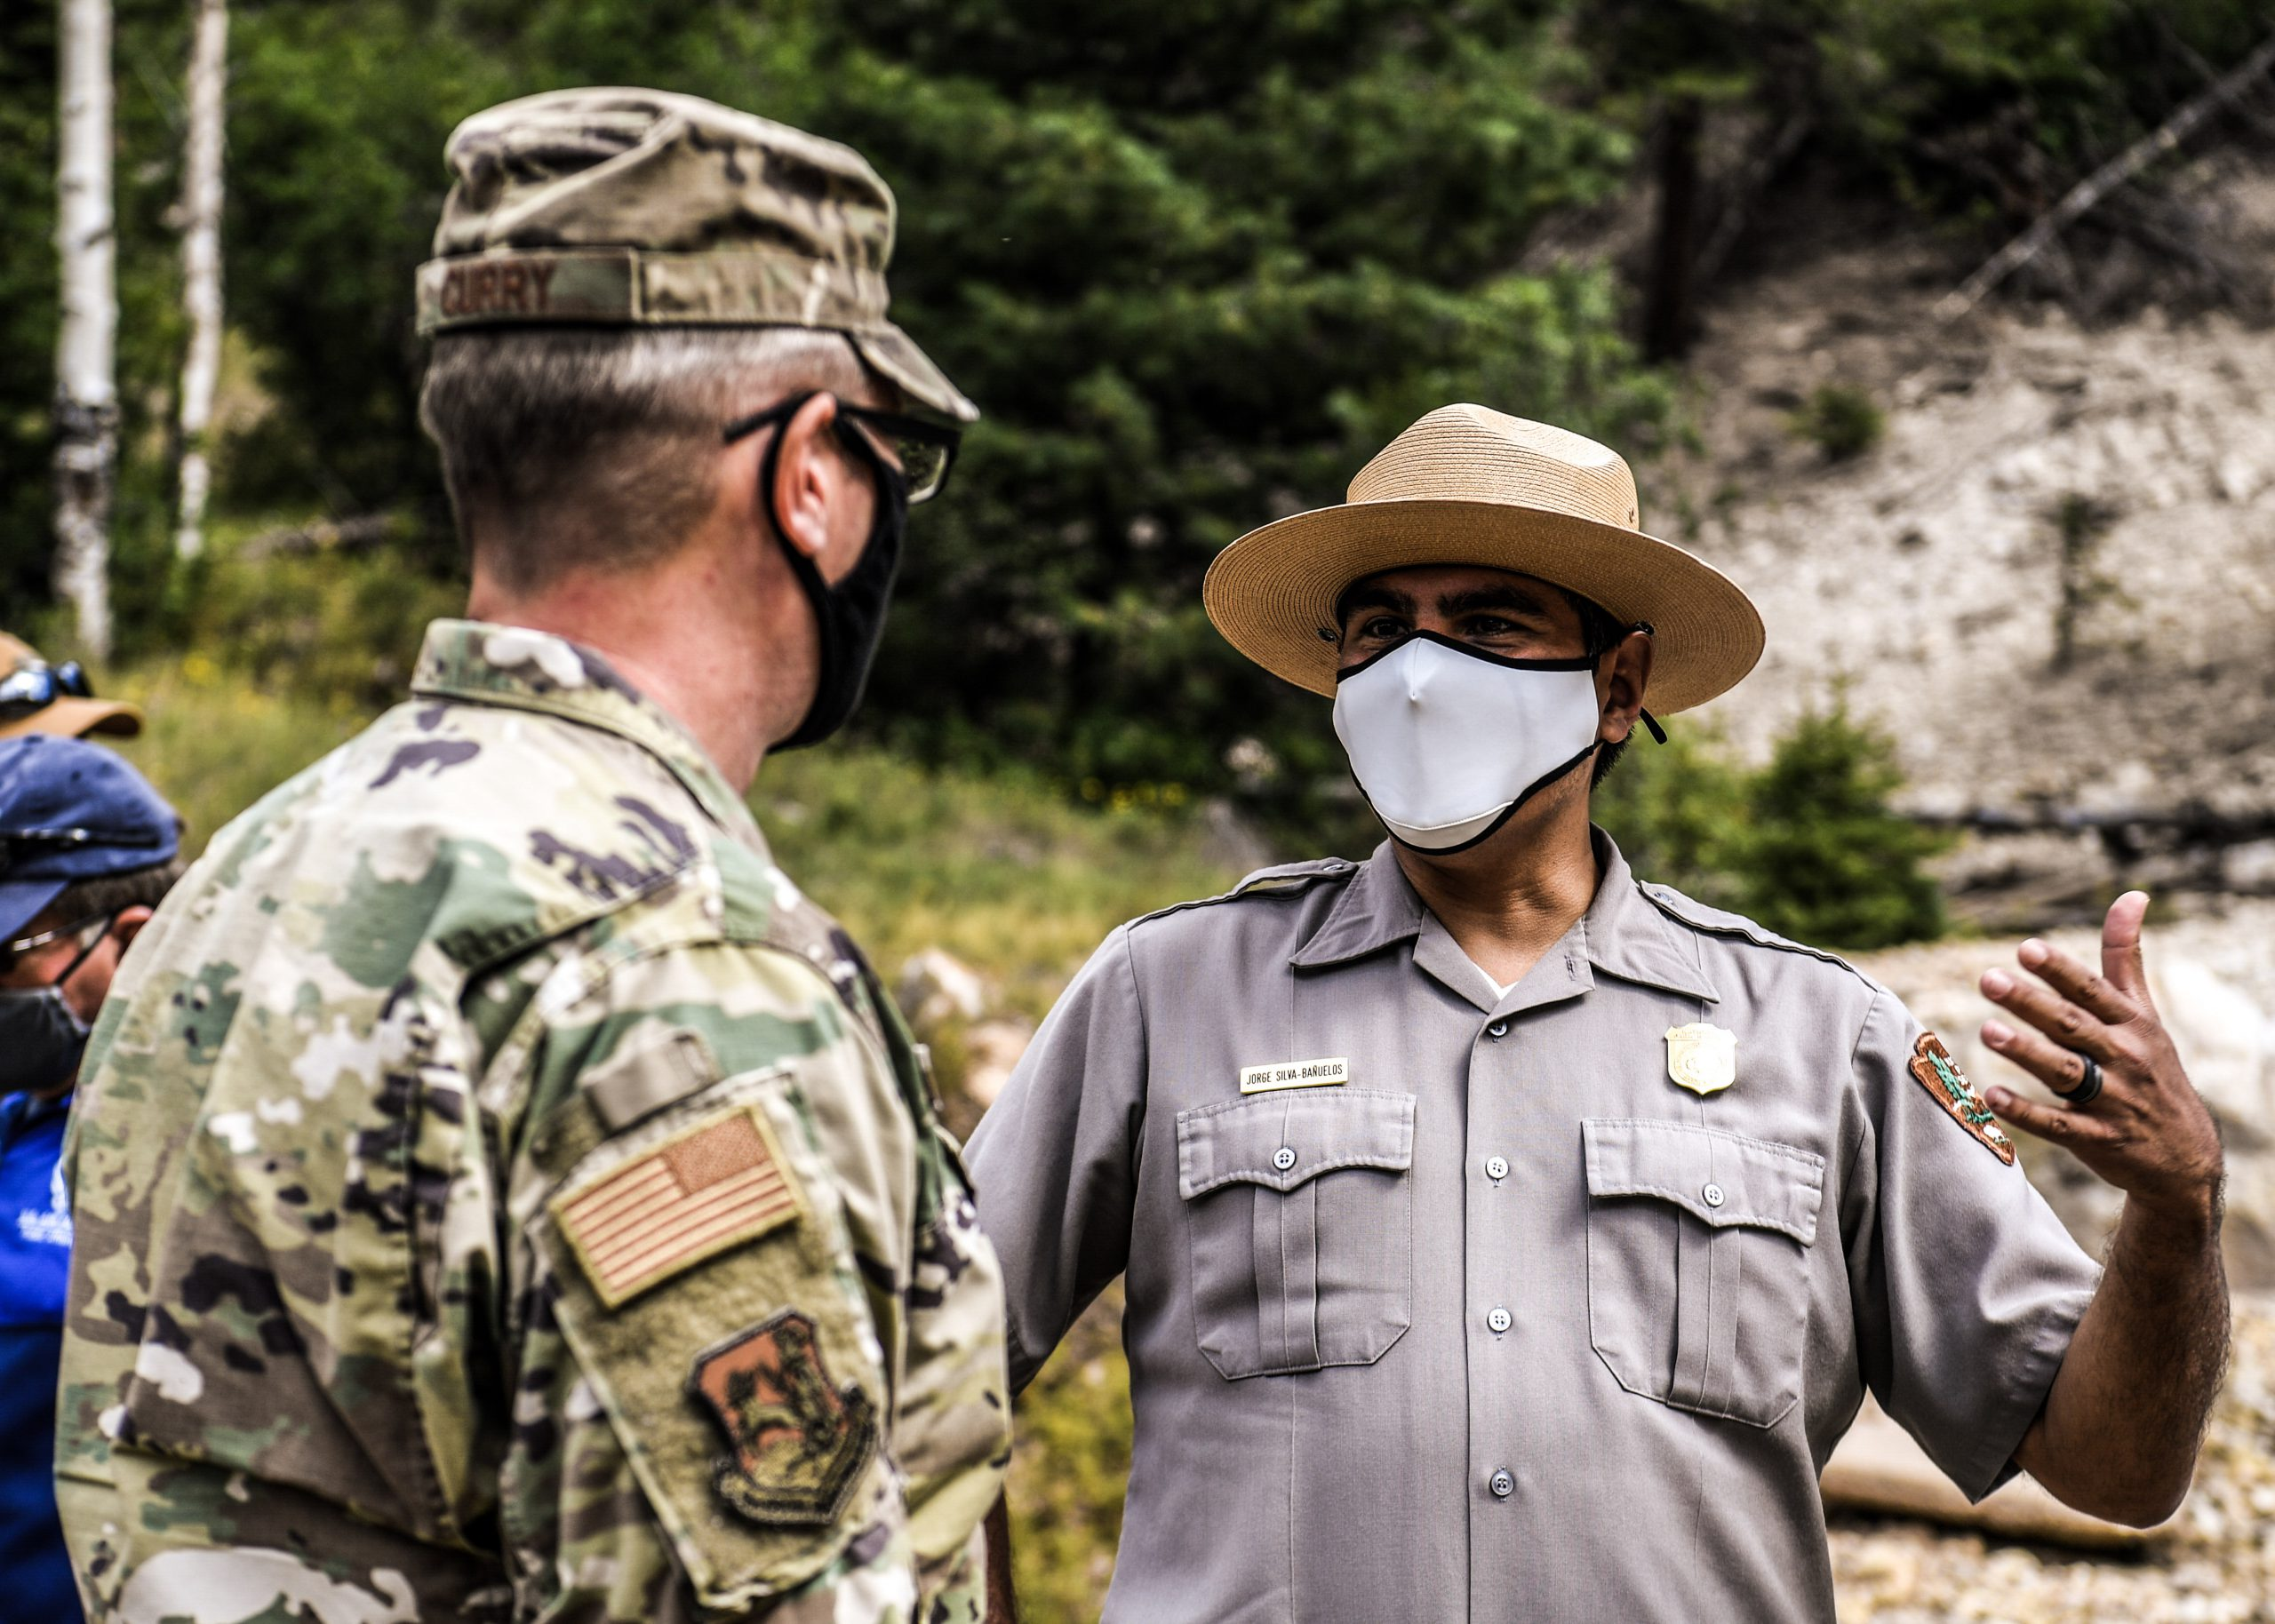 58th SOW leadership visit sacred Native American land, foster continued understanding